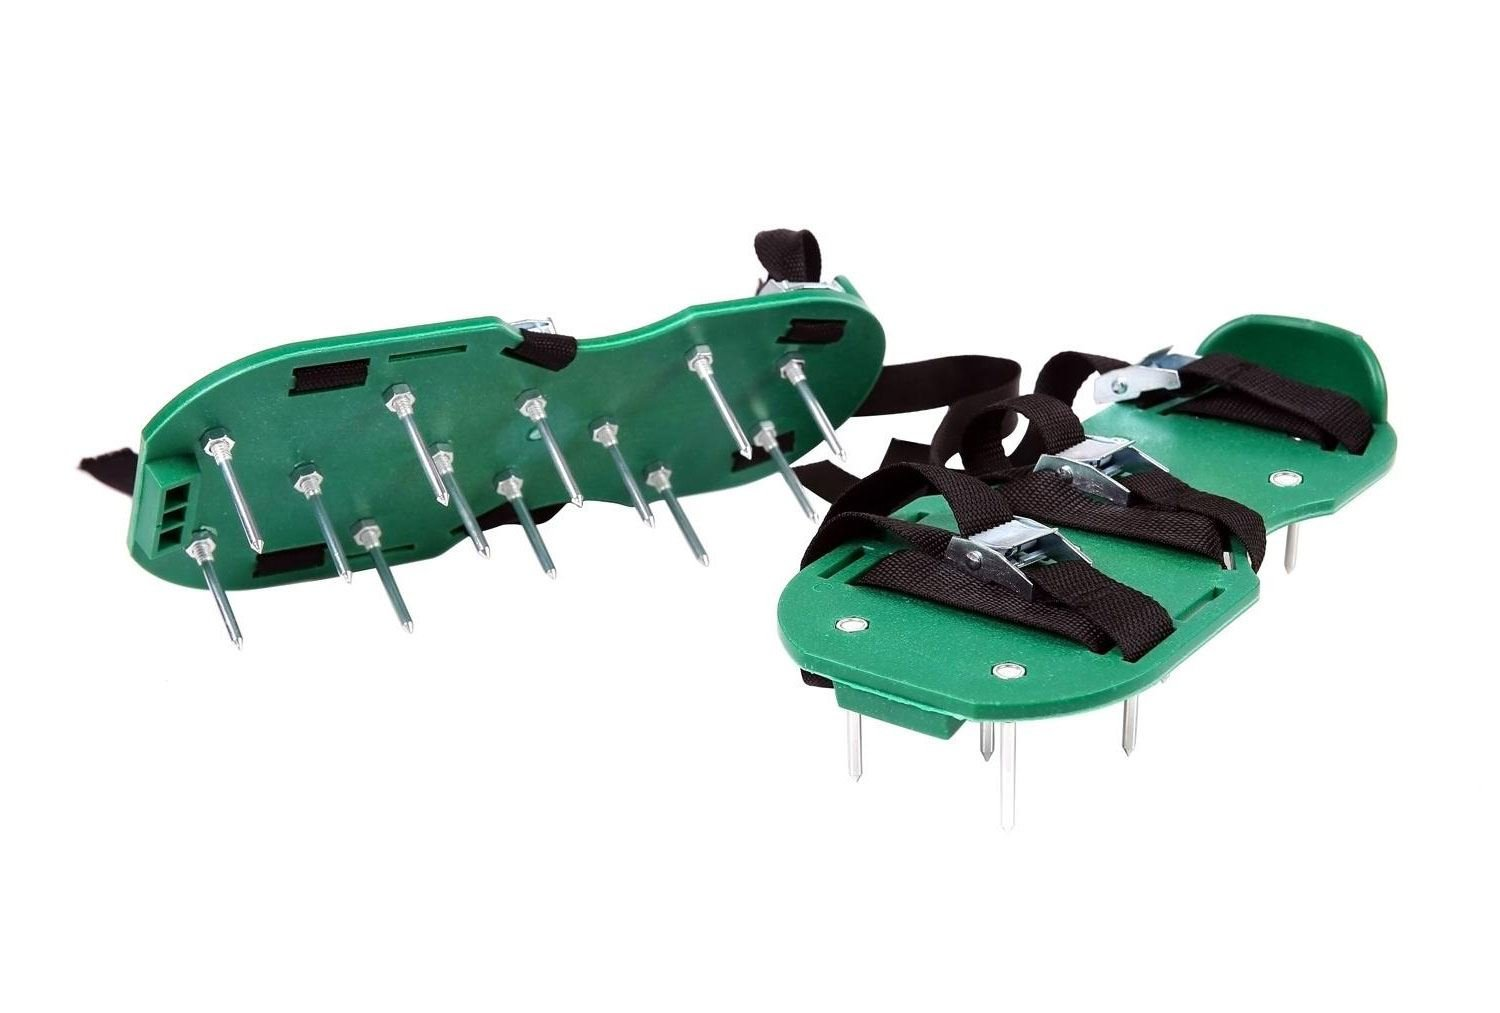 JfM Garden Lawn Aerator Shoes - with 26 spikes to allow your grass to breathe - NOW WITH 6 x METAL BUCKLES! JustForMoo